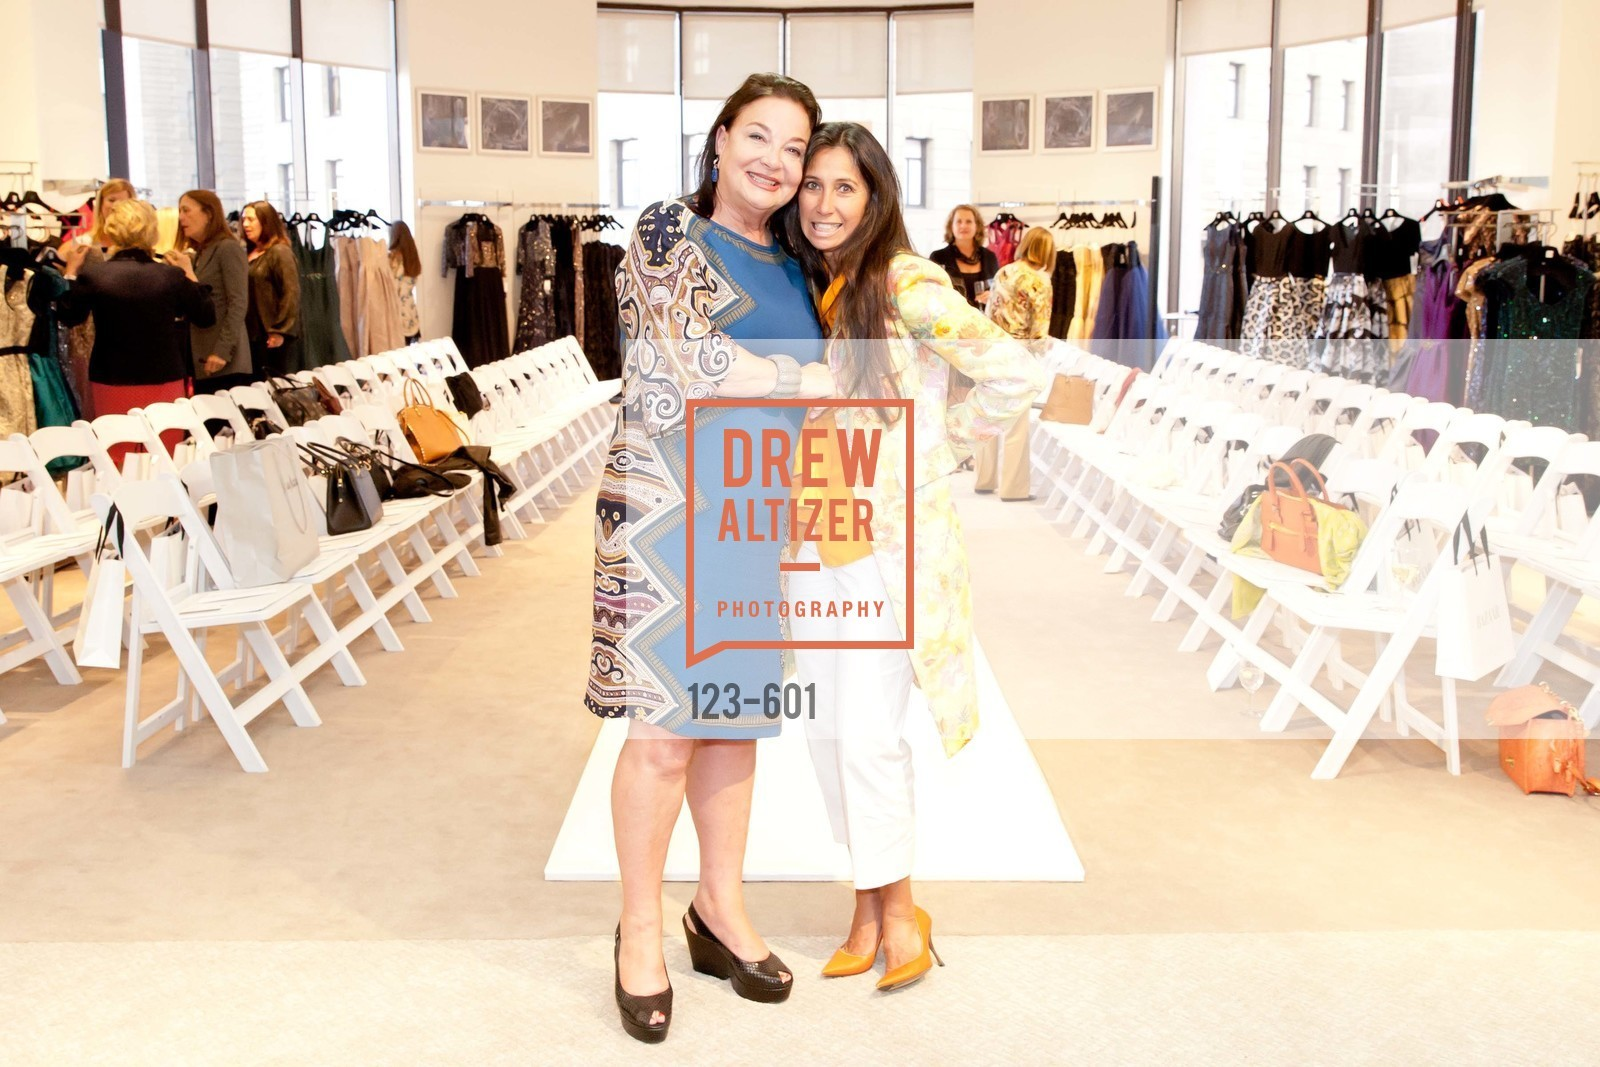 Elizabeth Merrill, SAKS FIFTH AVENUE and HARPER'S BAZAAR Host the San Francisco Yacht Club, US, October 9th, 2014,Drew Altizer, Drew Altizer Photography, full-service agency, private events, San Francisco photographer, photographer california